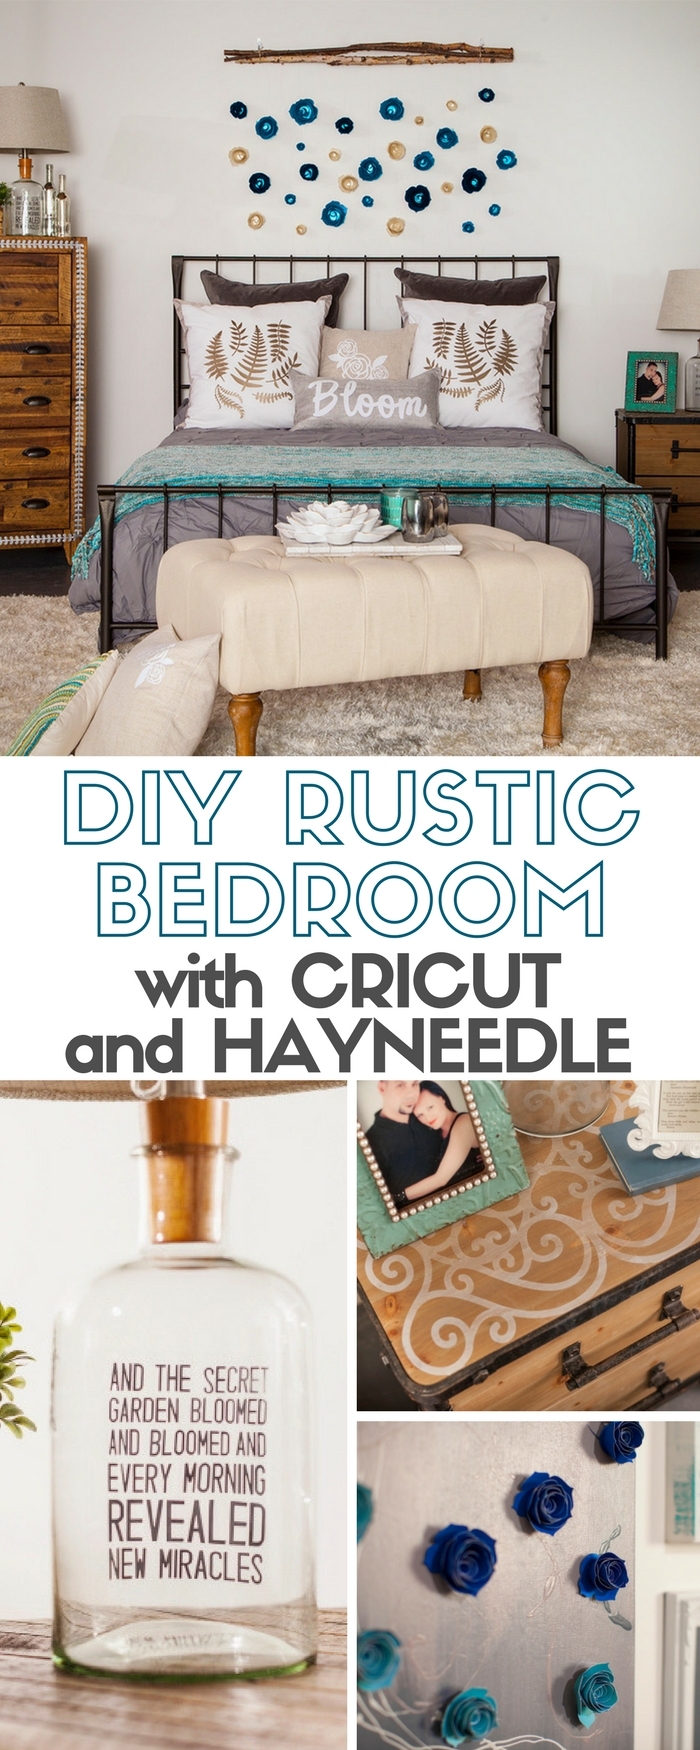 You can create a beautiful Rustic Bedroom theme when you combine Hayneedle furniture and easy DIY craft tutorial ideas using the Cricut Explore.